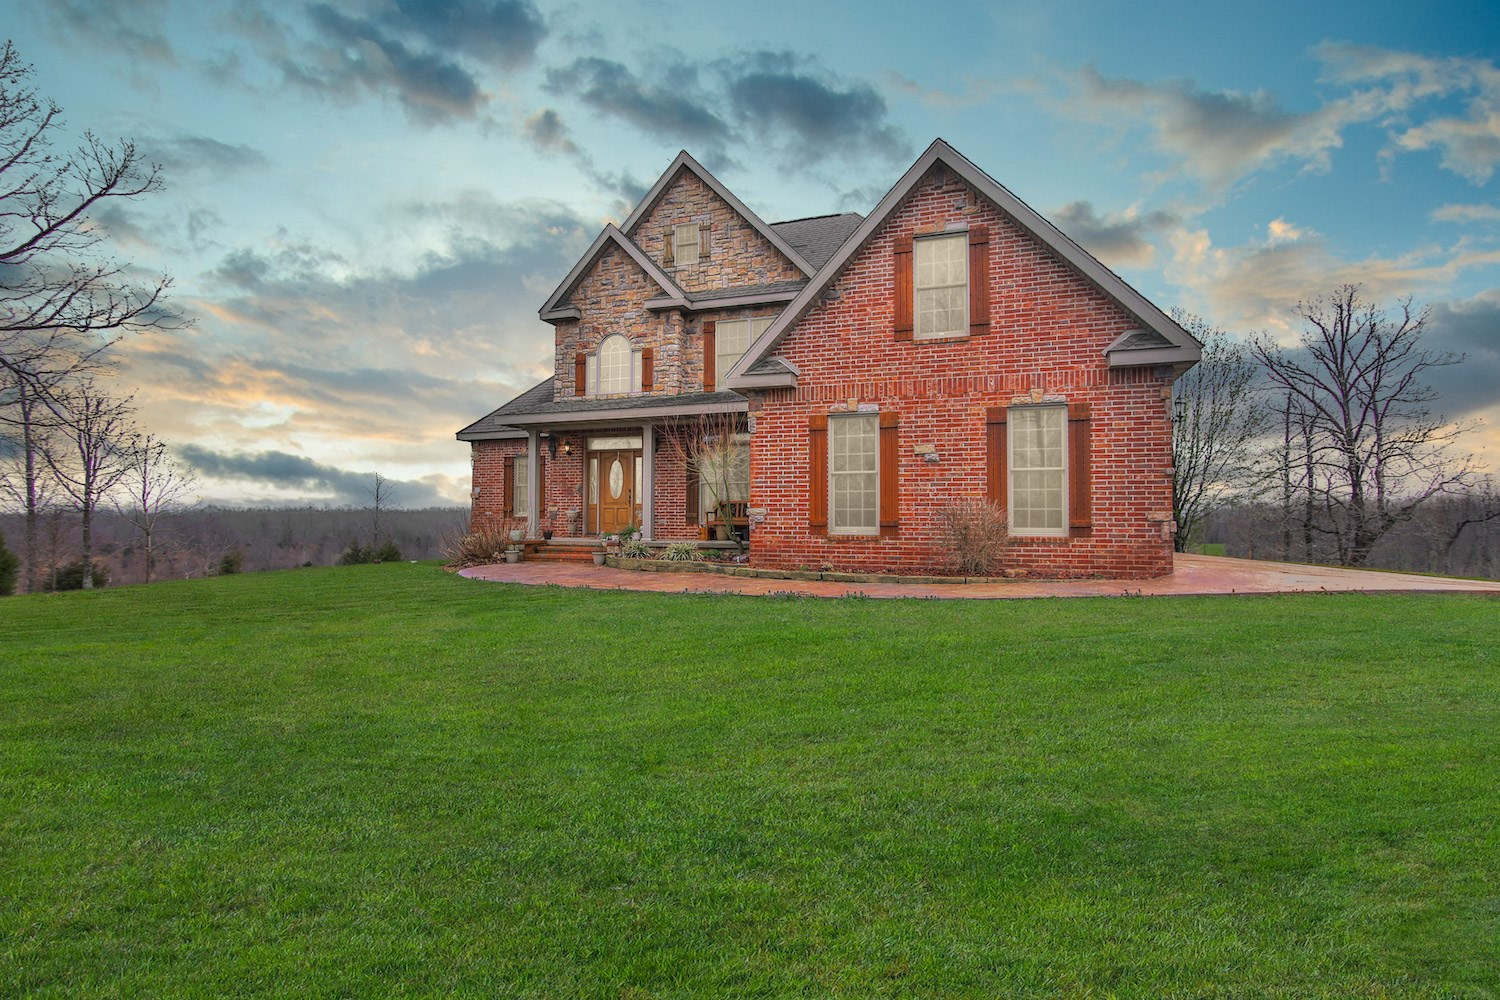 Luxury Country Home for Sale with Acreage in the Ozarks